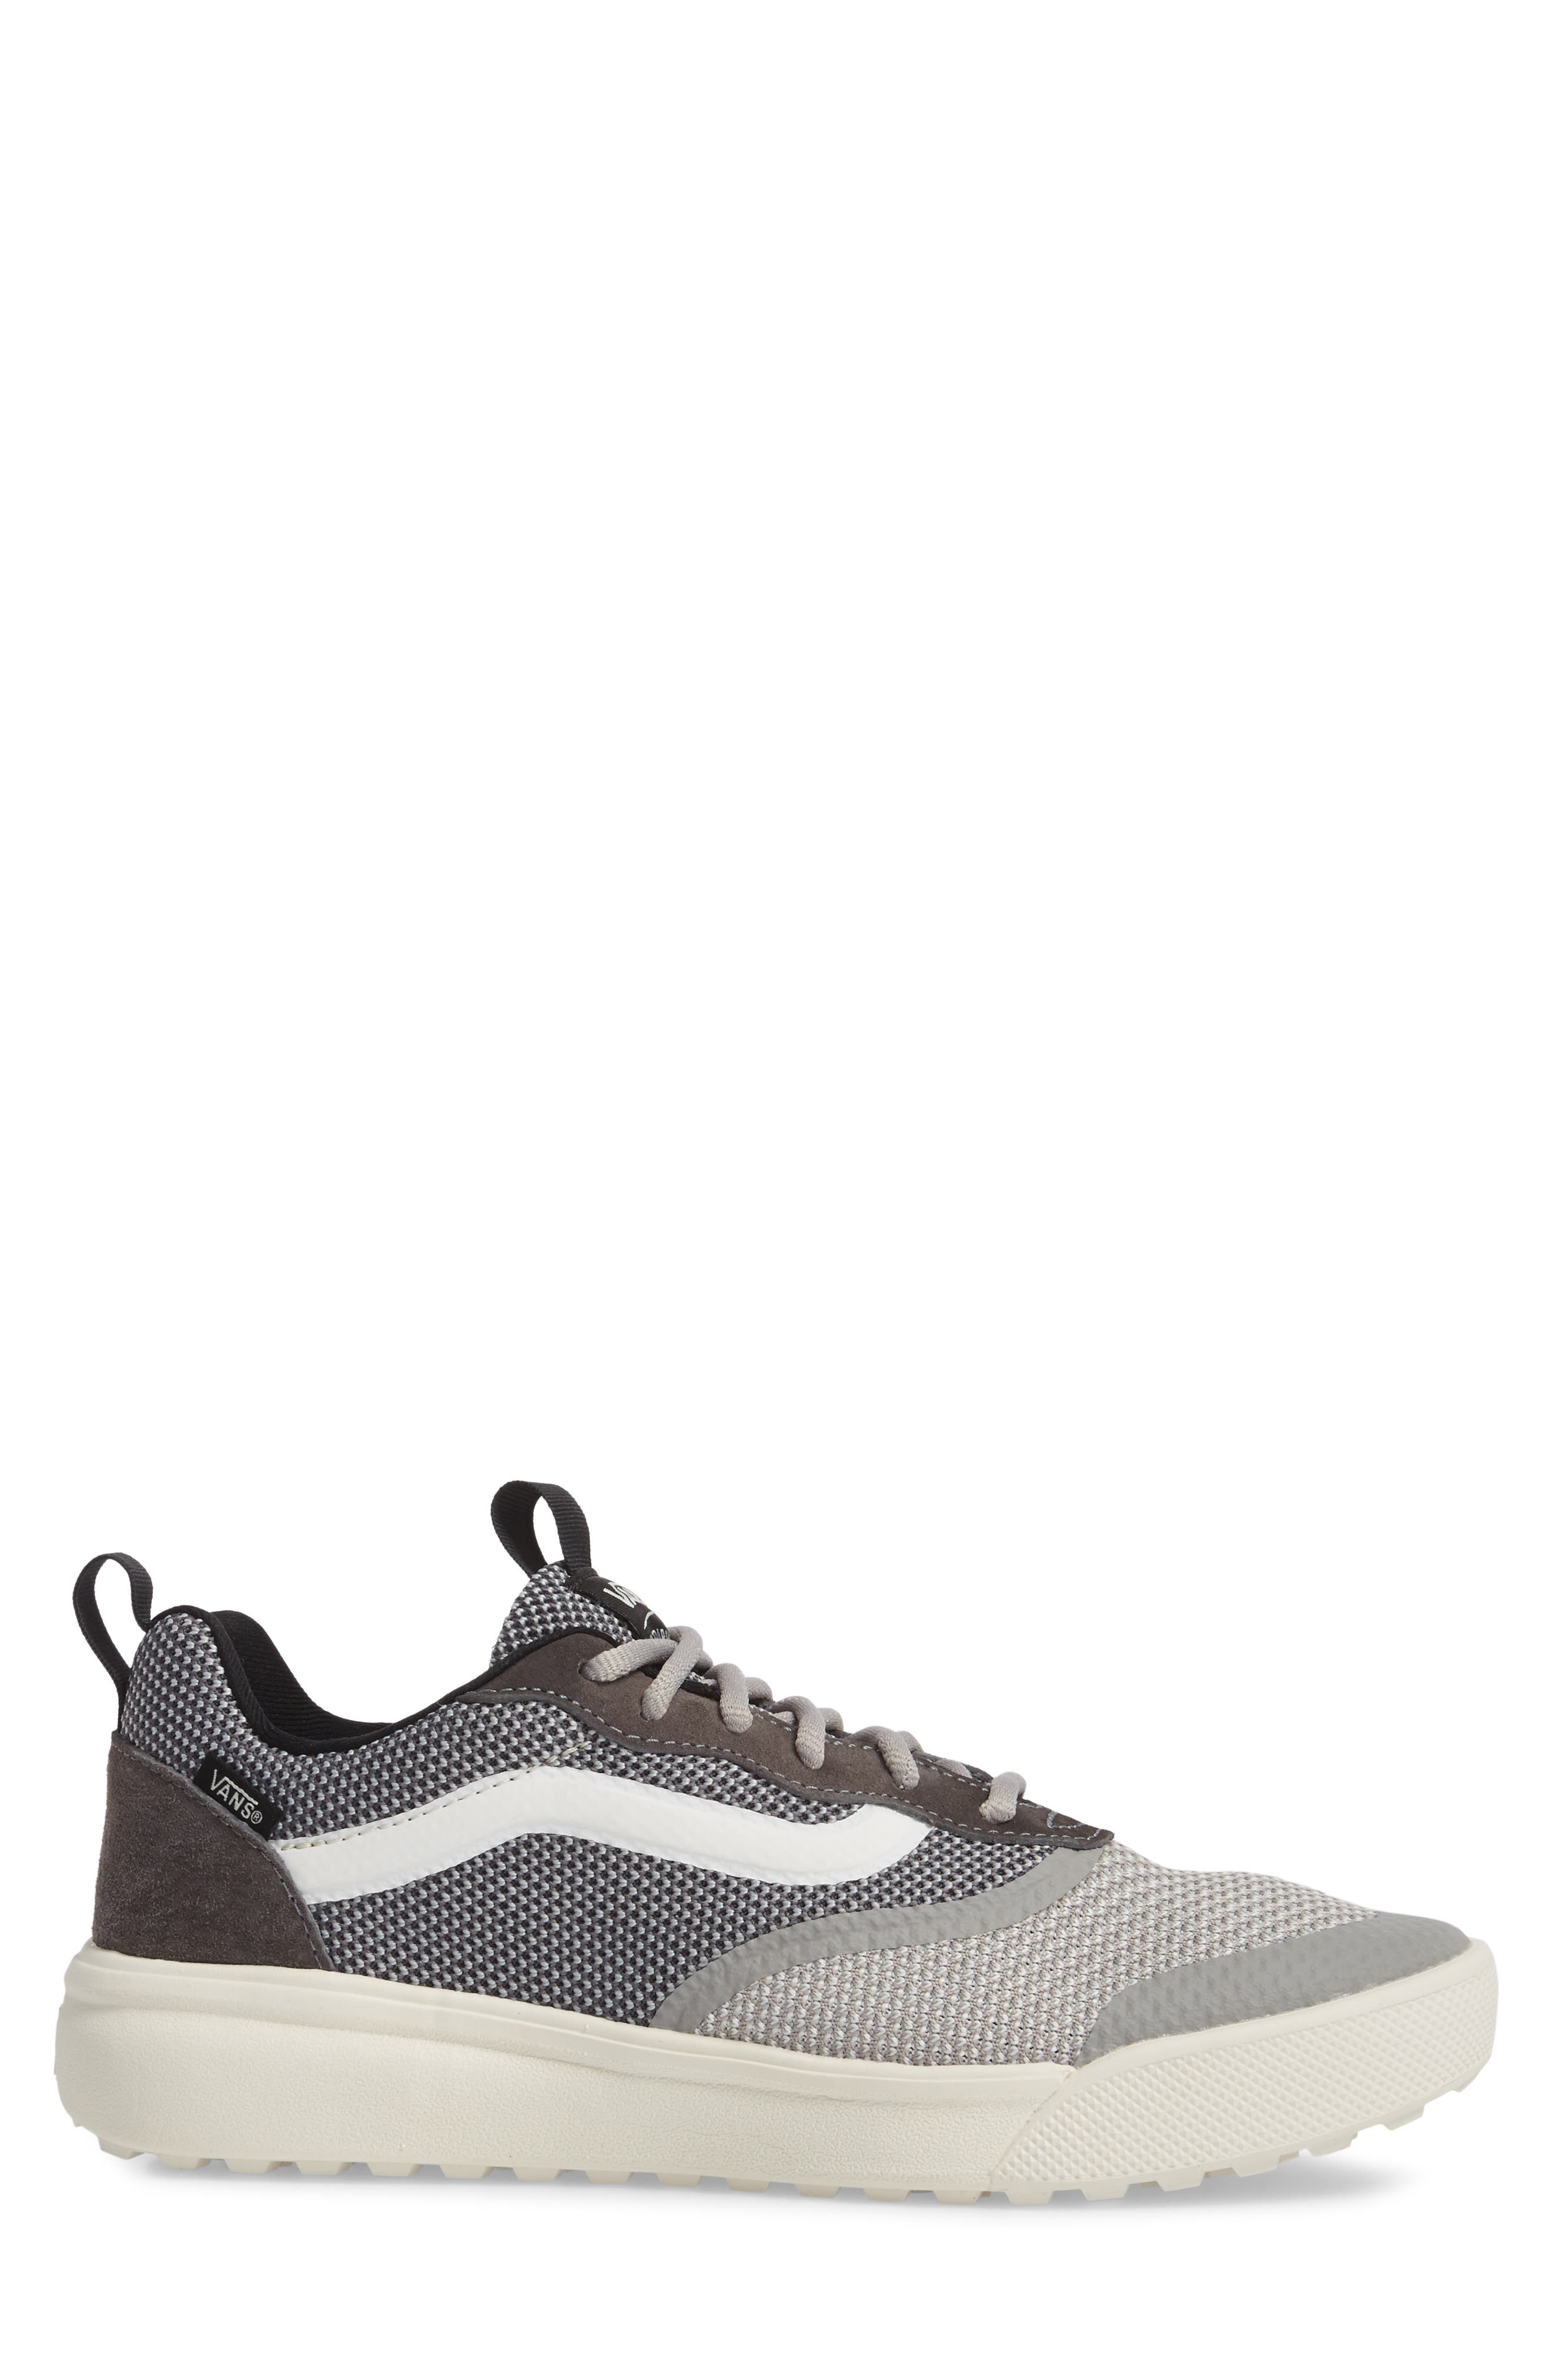 UltraRange DX Low Top Sneaker,                             Alternate thumbnail 3, color,                             Pewter/ Drizzle